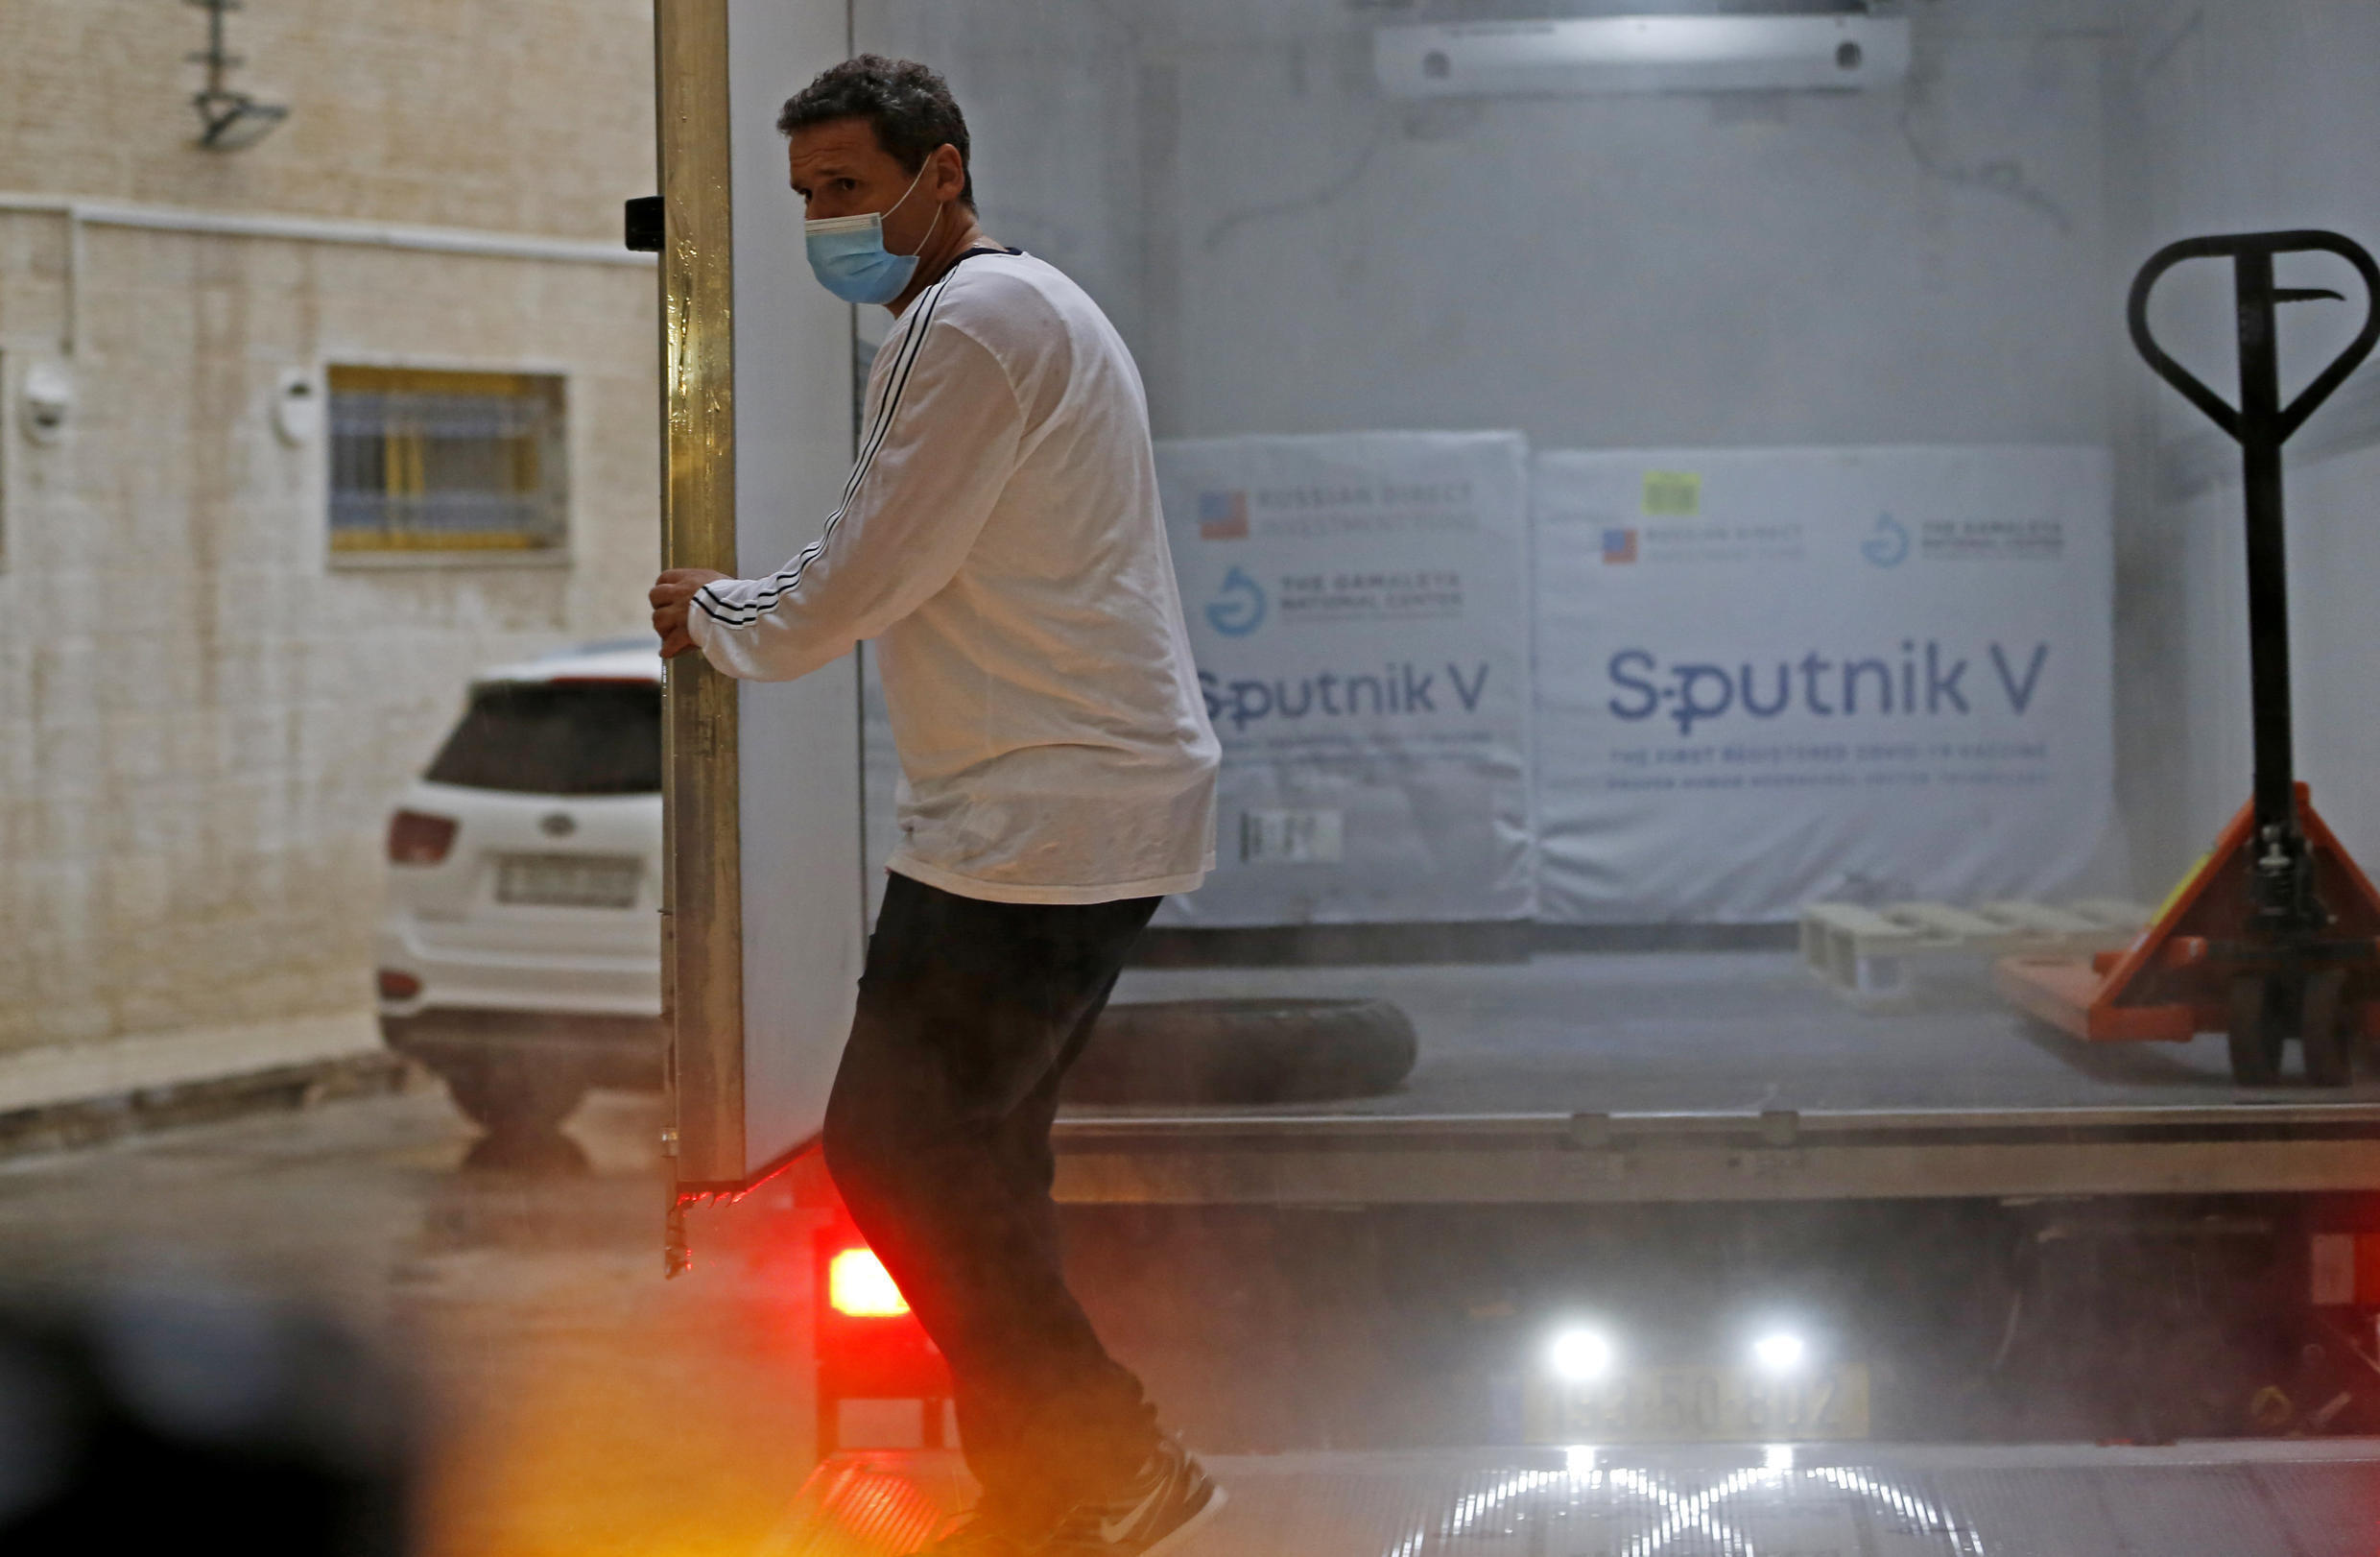 A truck carrying the first batch of Russia's Sputnik V COVID-19 vaccine arrives to the West Bank city of Ramallah on Thursday